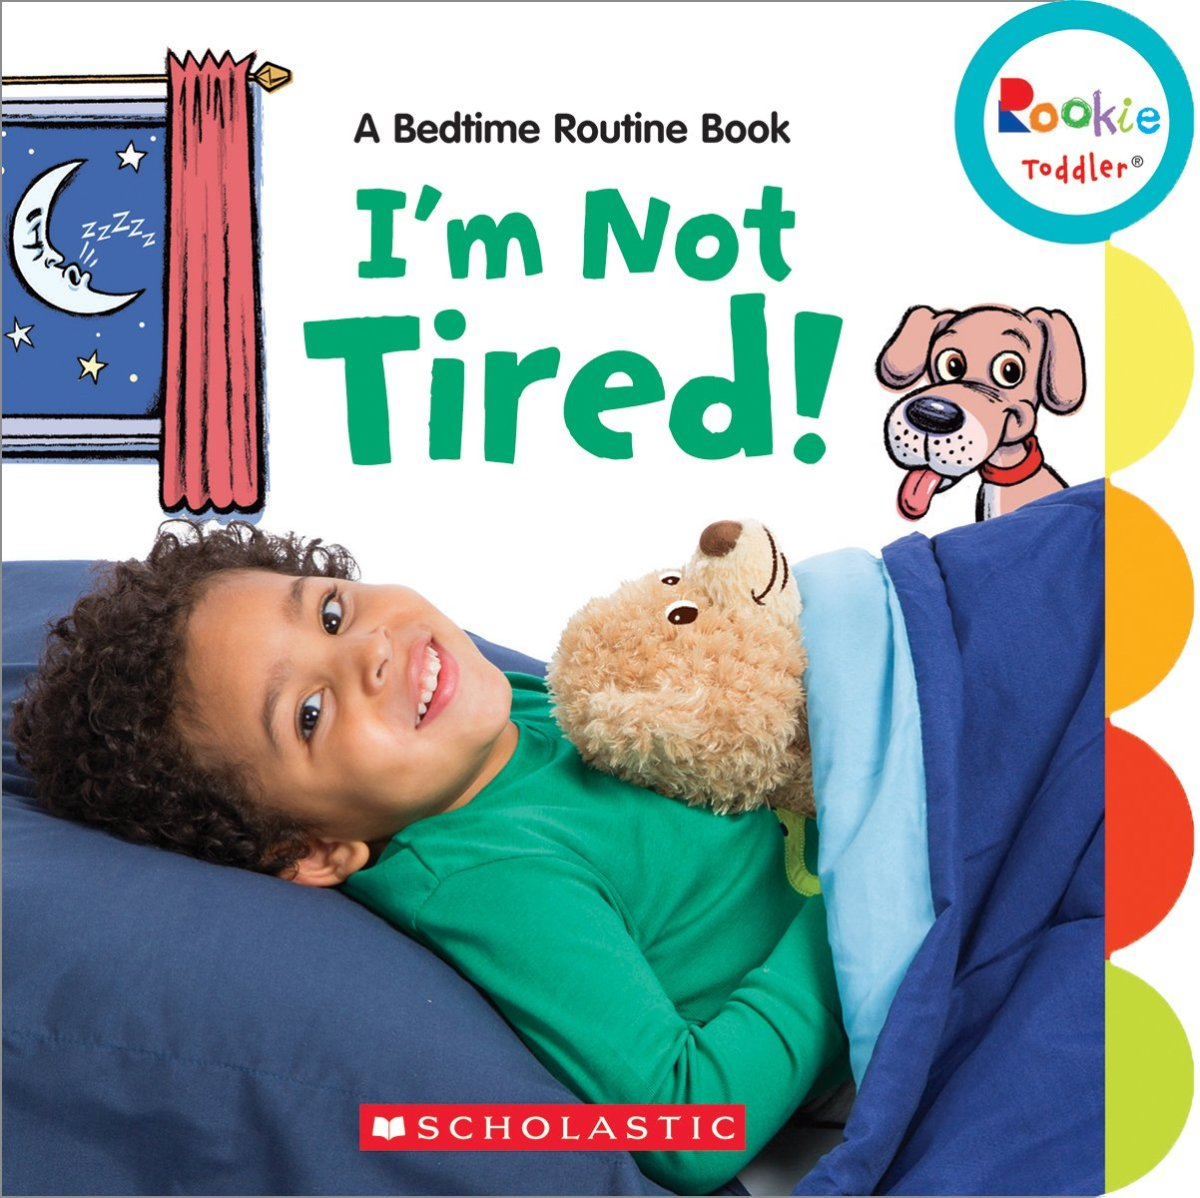 I'm Not Tired!